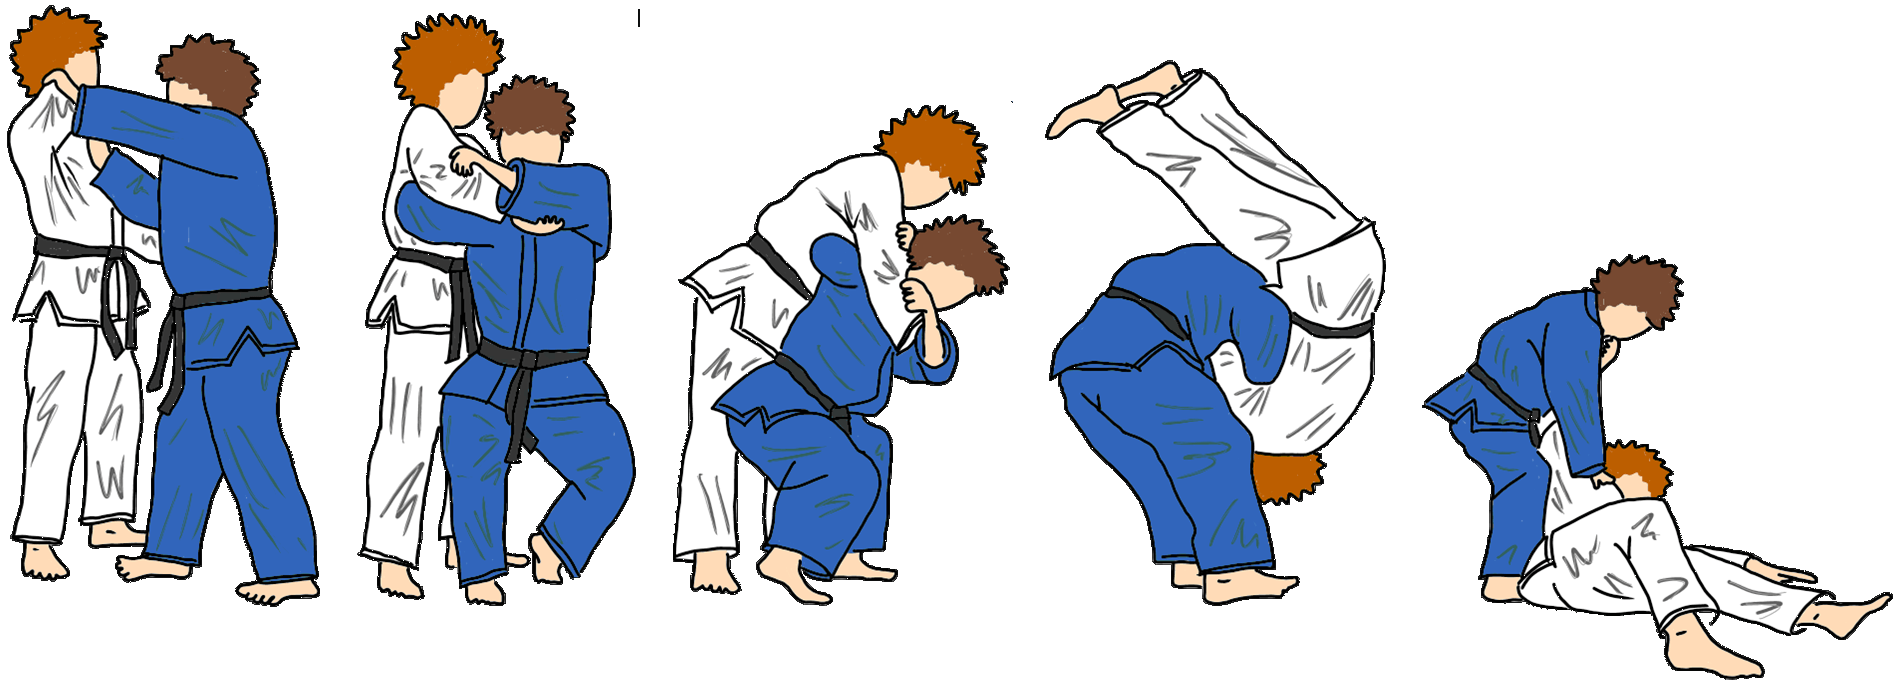 Morote-seoi-nage (beidhändiger Schulterwurf) 背負投